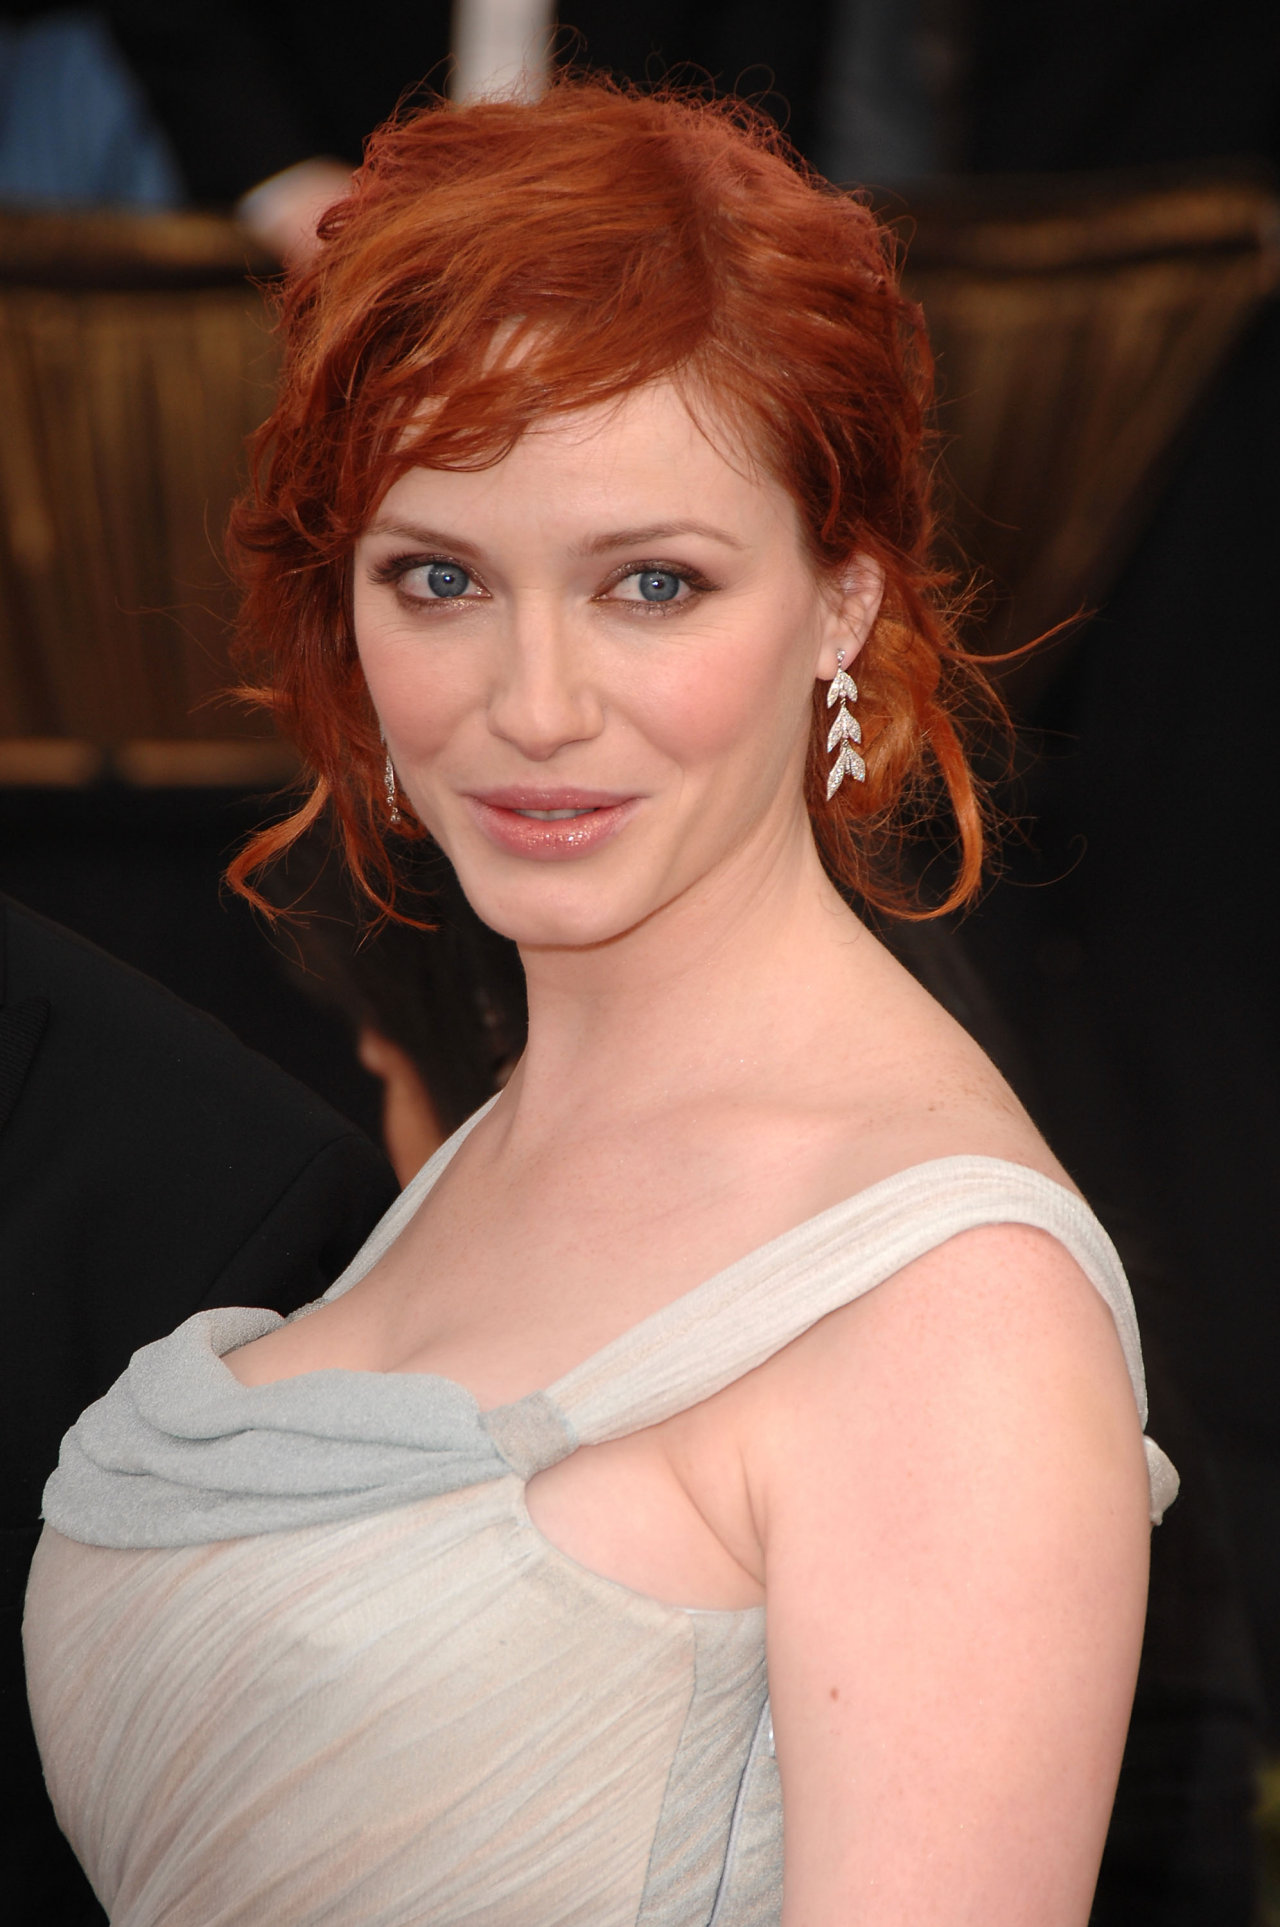 christina-hendricks-nude-photos